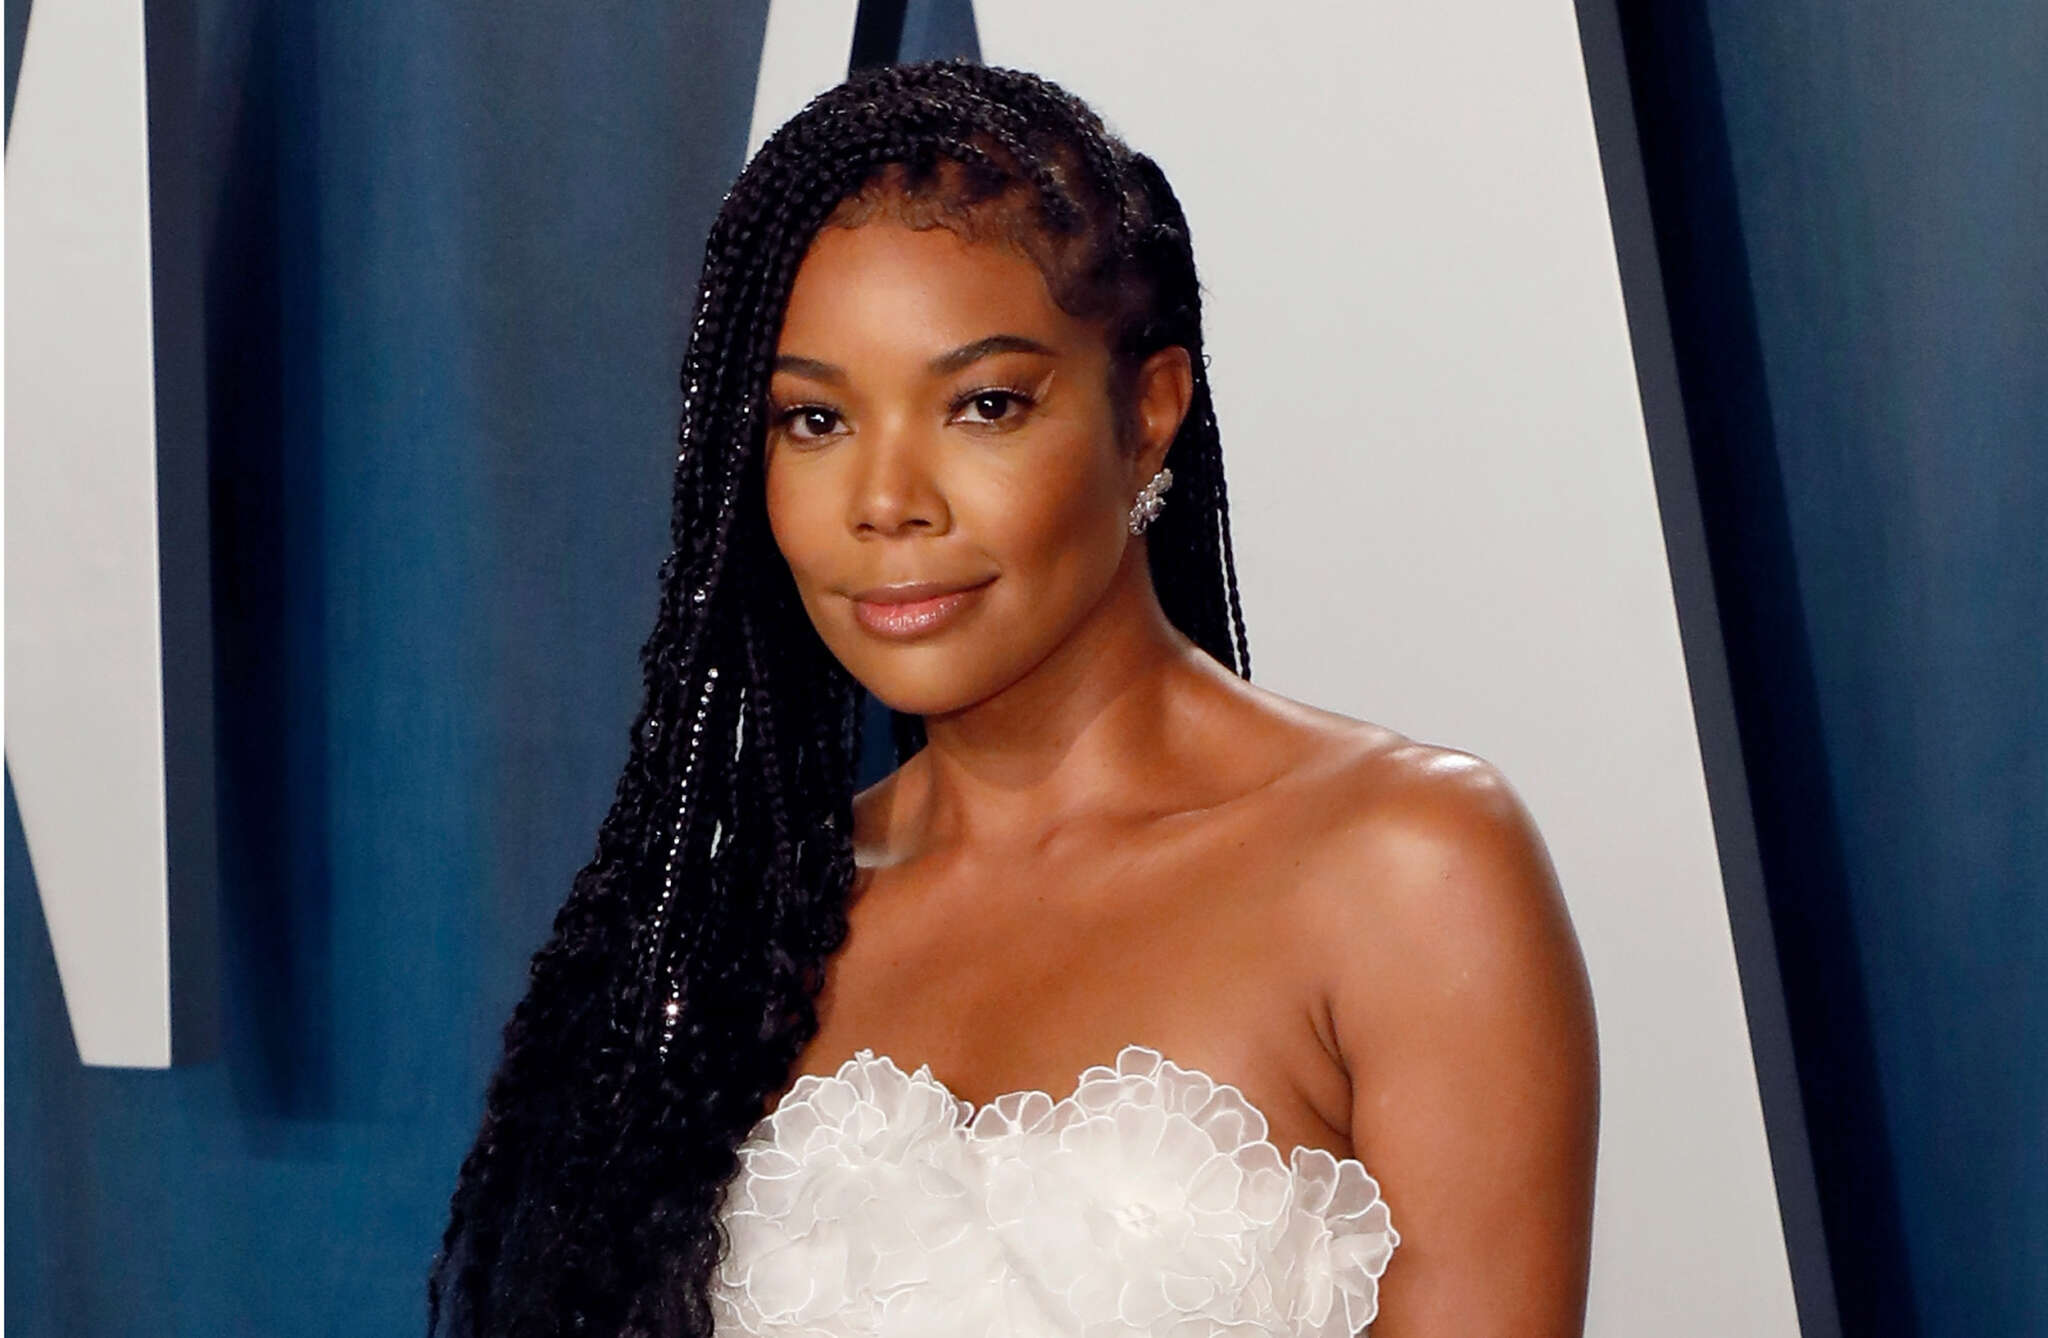 Gabrielle Union Celebrates The Birthday Of Zaire - Check Out Her Post Below